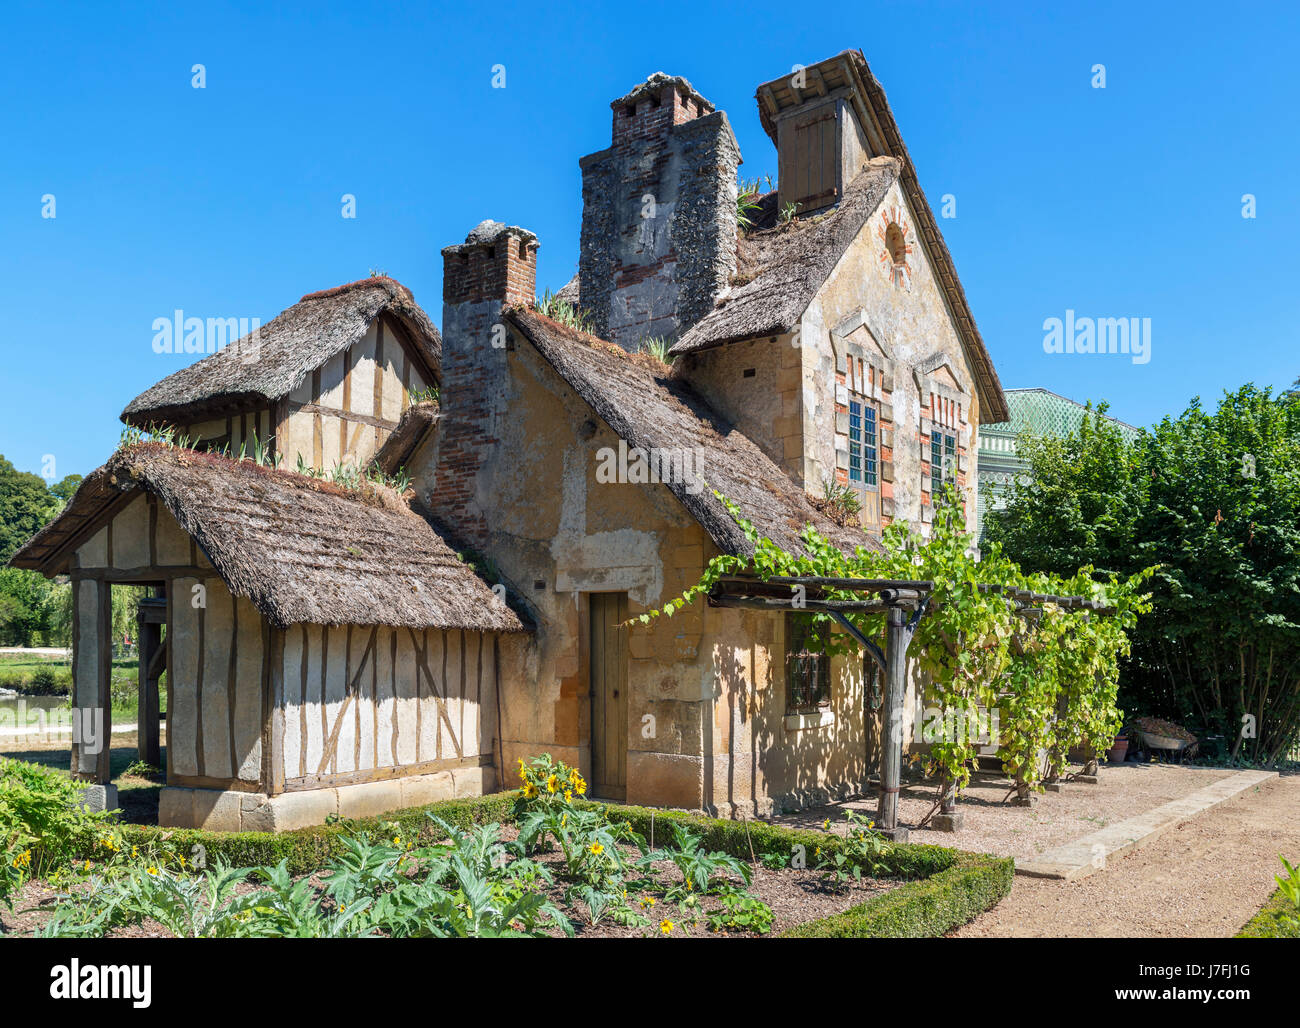 moulin watermill in the hameau de la reine queen 39 s hamlet stock photo royalty free image. Black Bedroom Furniture Sets. Home Design Ideas